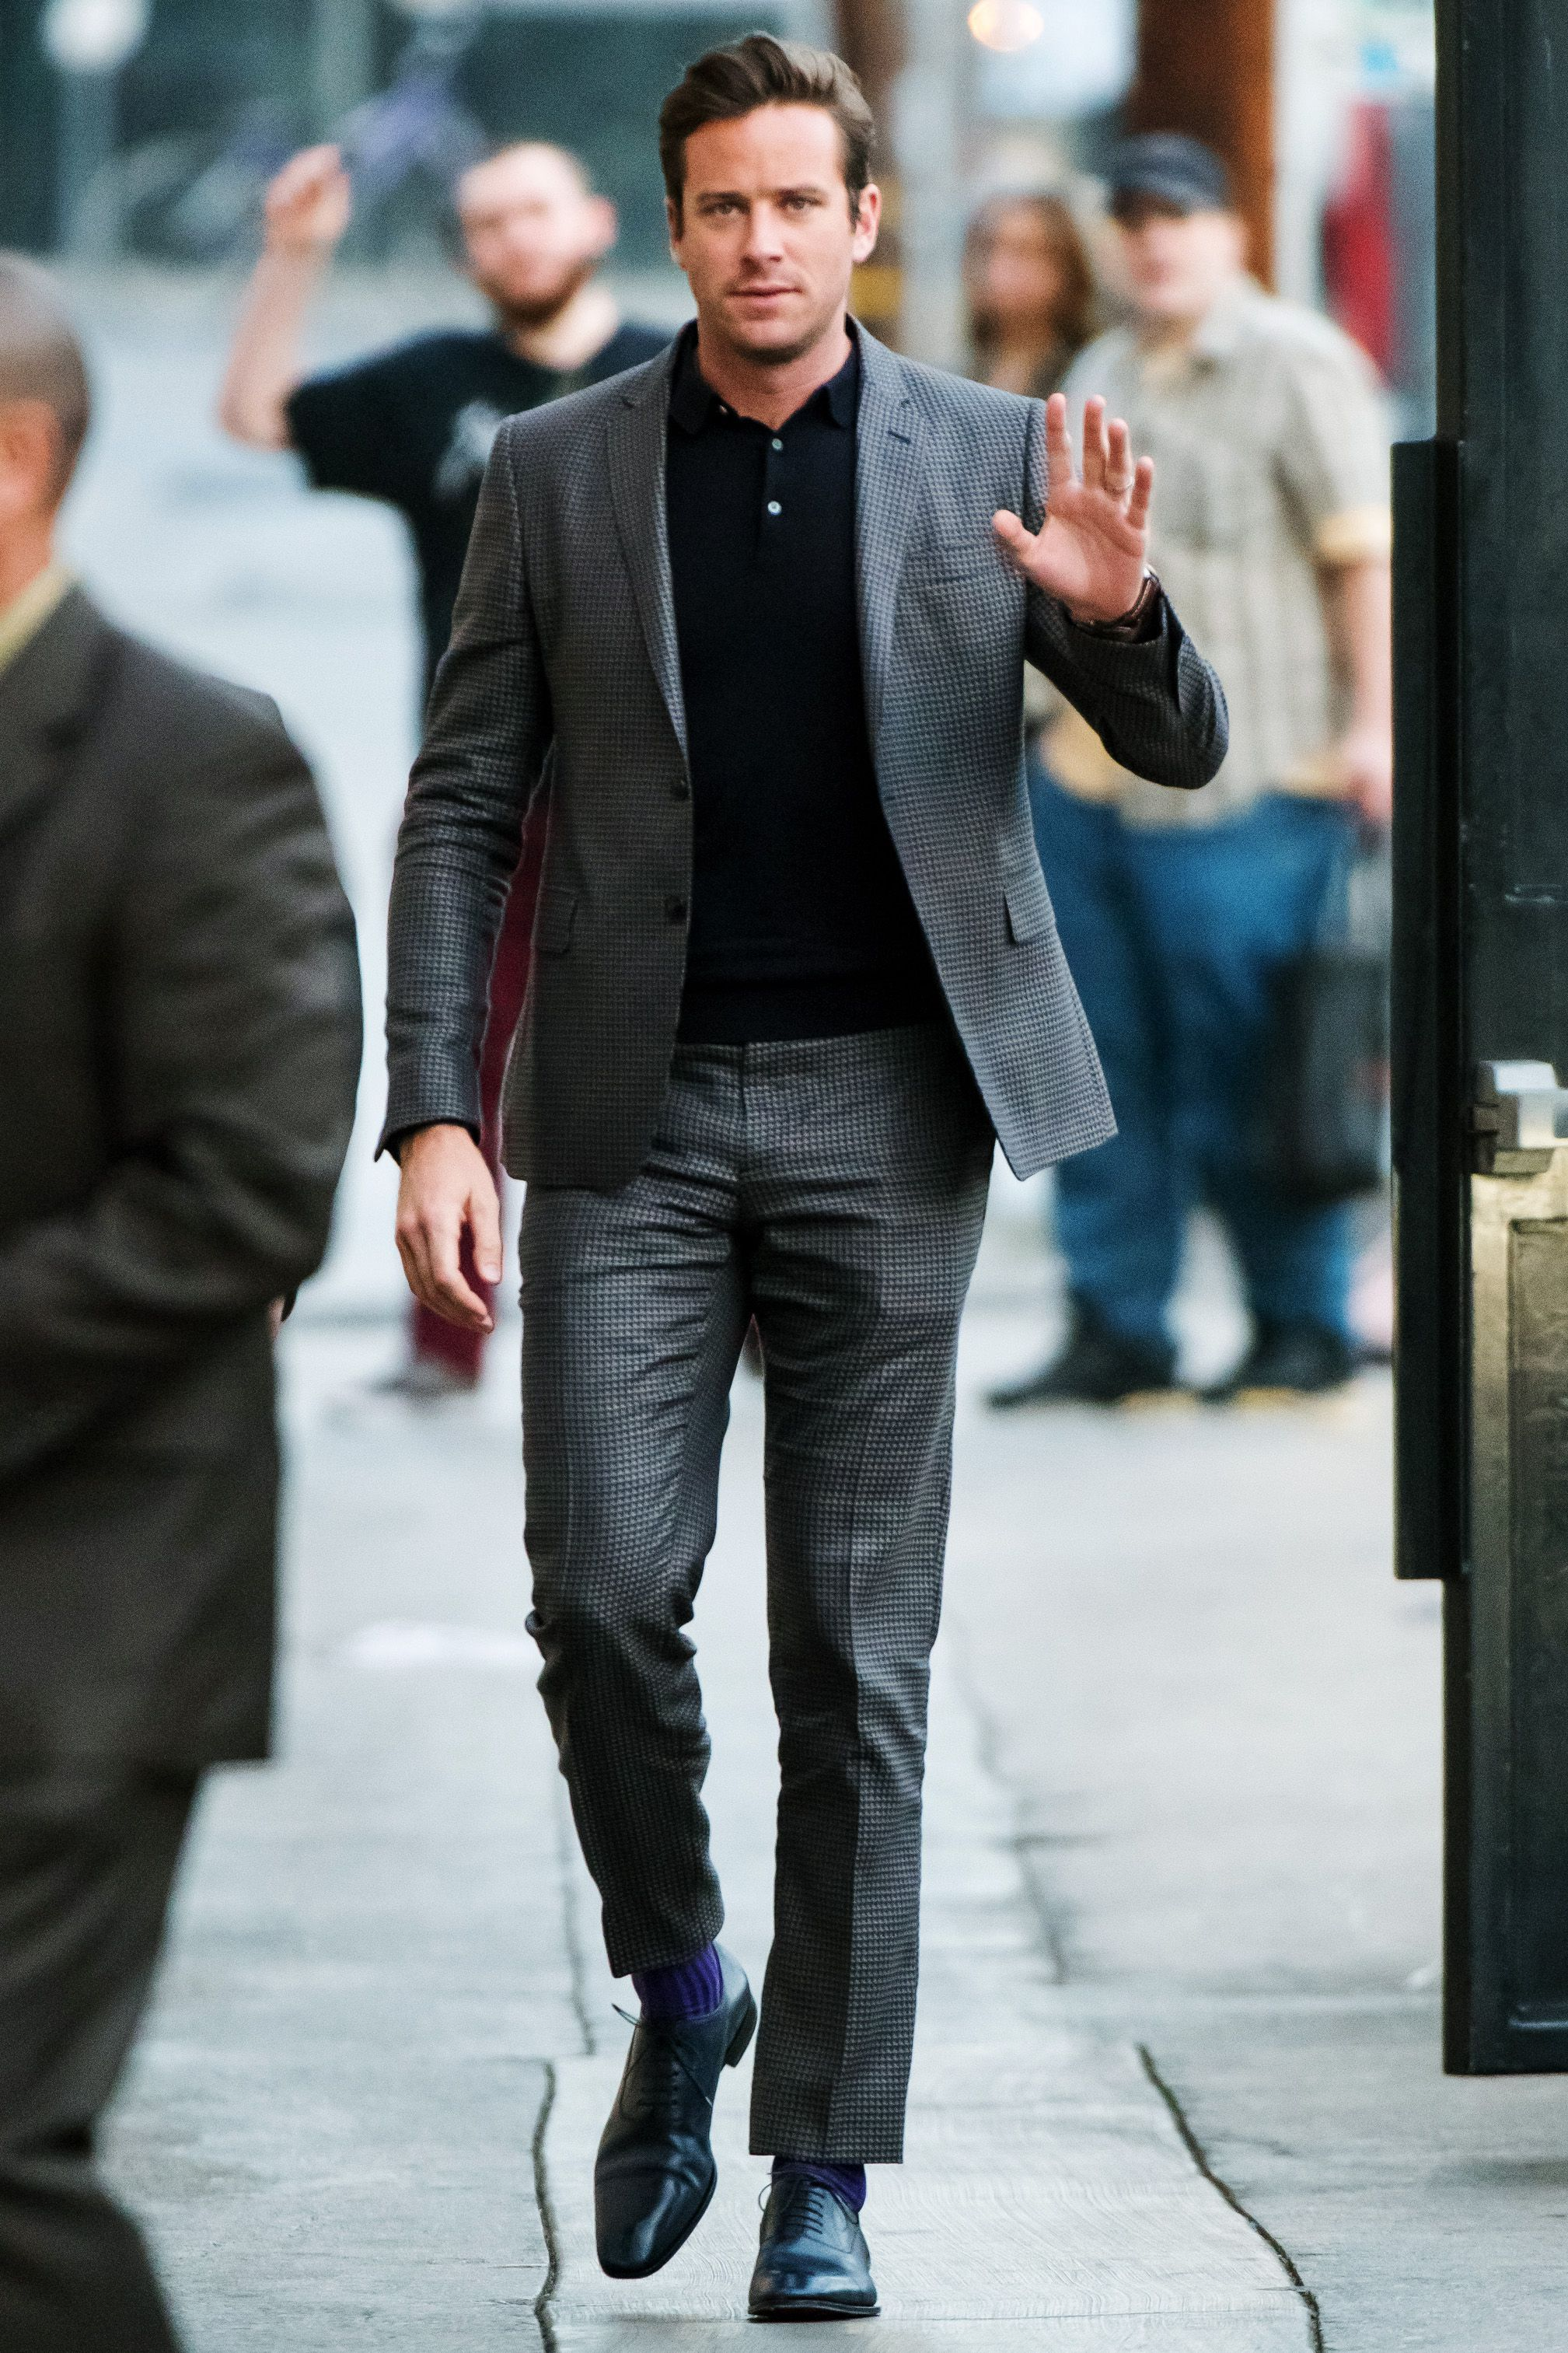 Armie Hammer fabulous! Wearing a great Suit and a Black